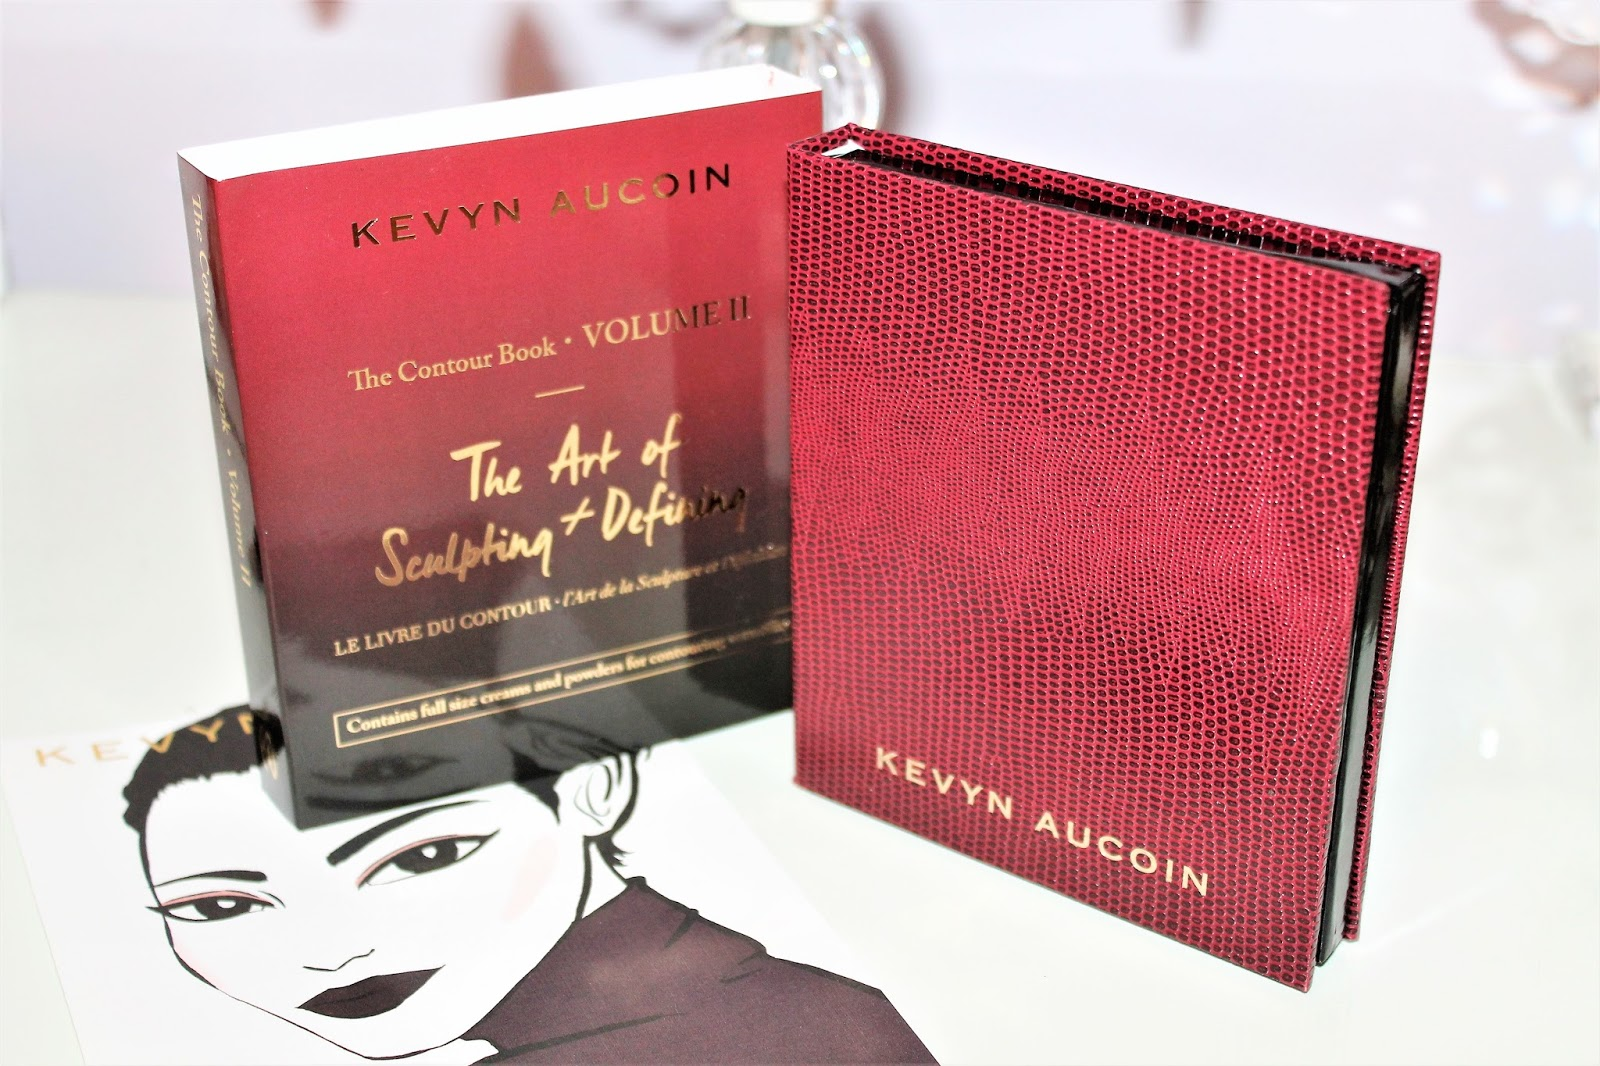 I Was Sent The Kevyn Aucoin The Contour Book + The Art Of Sculpting &  Defining Volume Ii, And Contour Brush, Both Sephora Exclusives